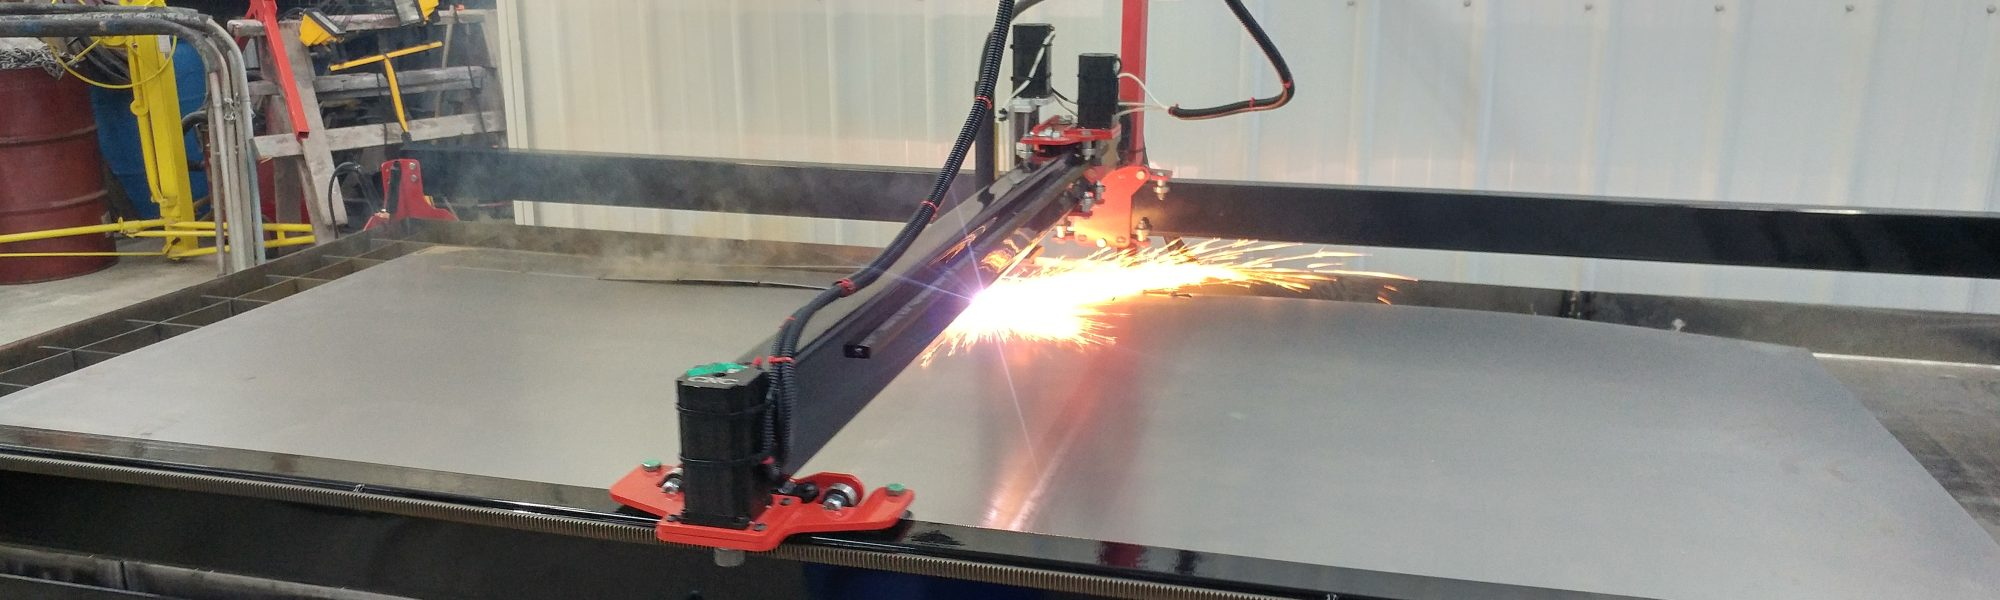 Plasma Cutting & Fabrication